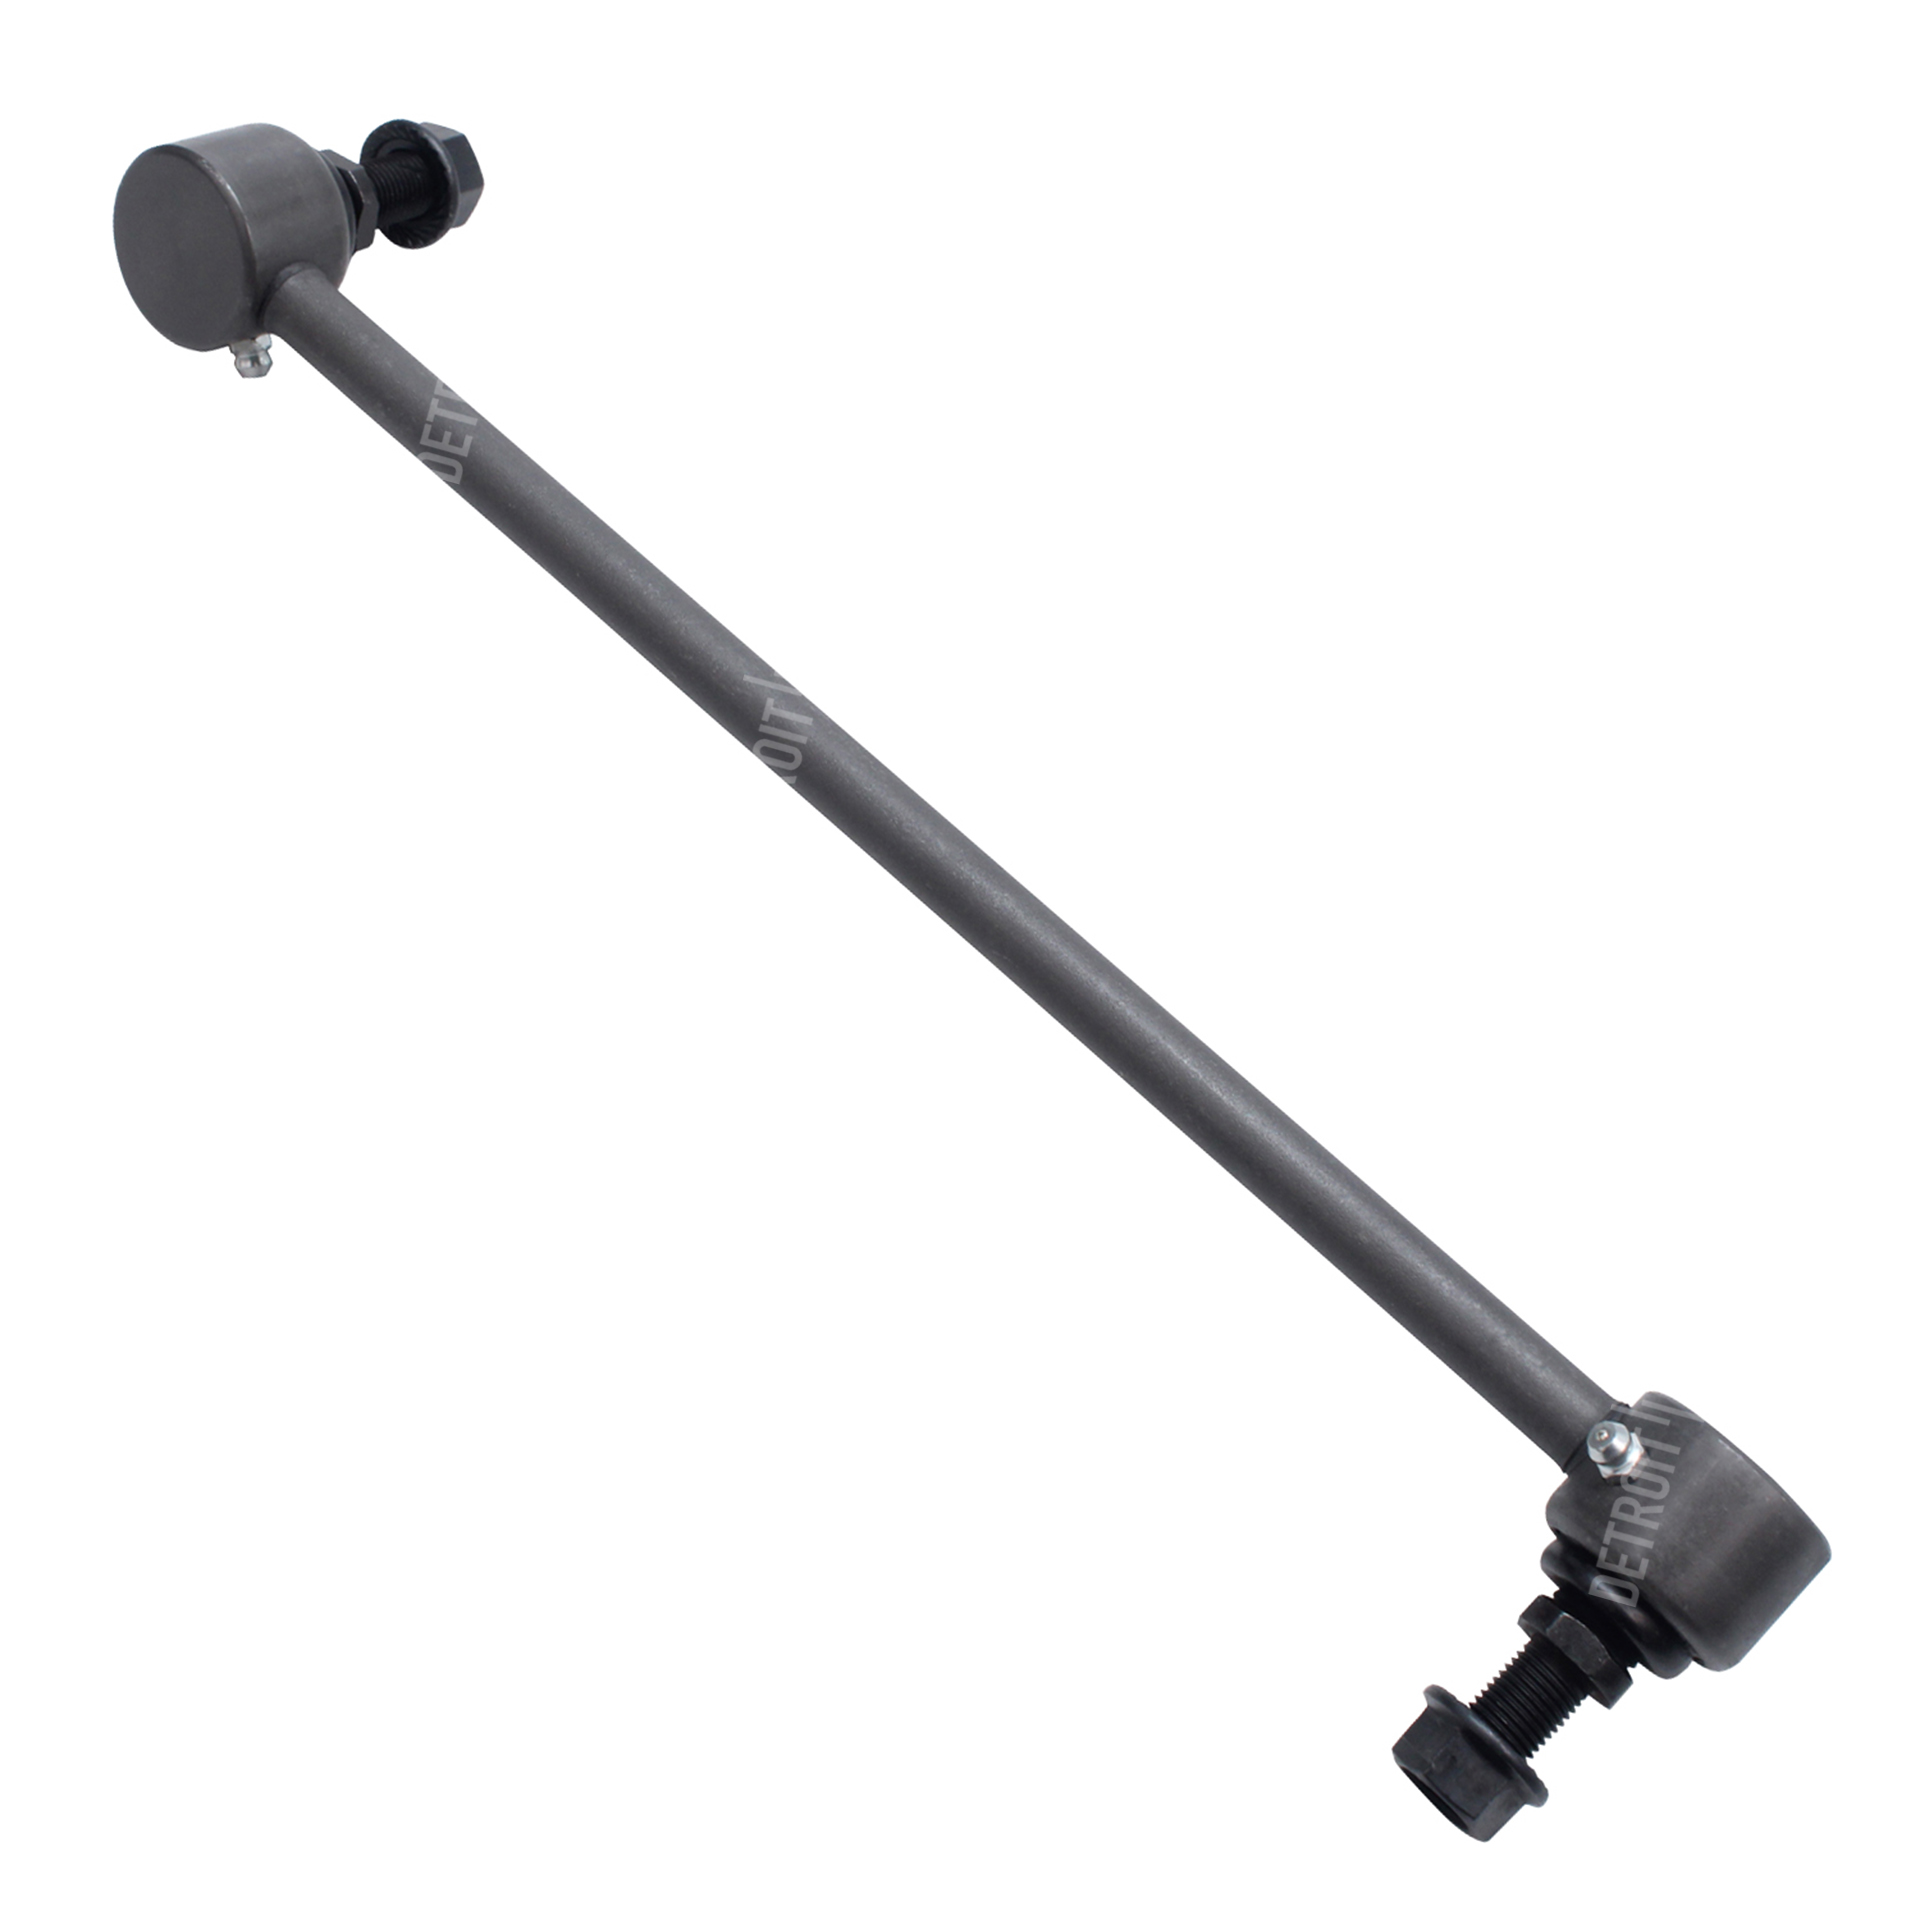 Detroit Axle - Front Left Sway Bar / Stablizer Link for 2011-2014 Hyundai Sonata 2.4L NON-Hybrid - NOT For Sport Sus.